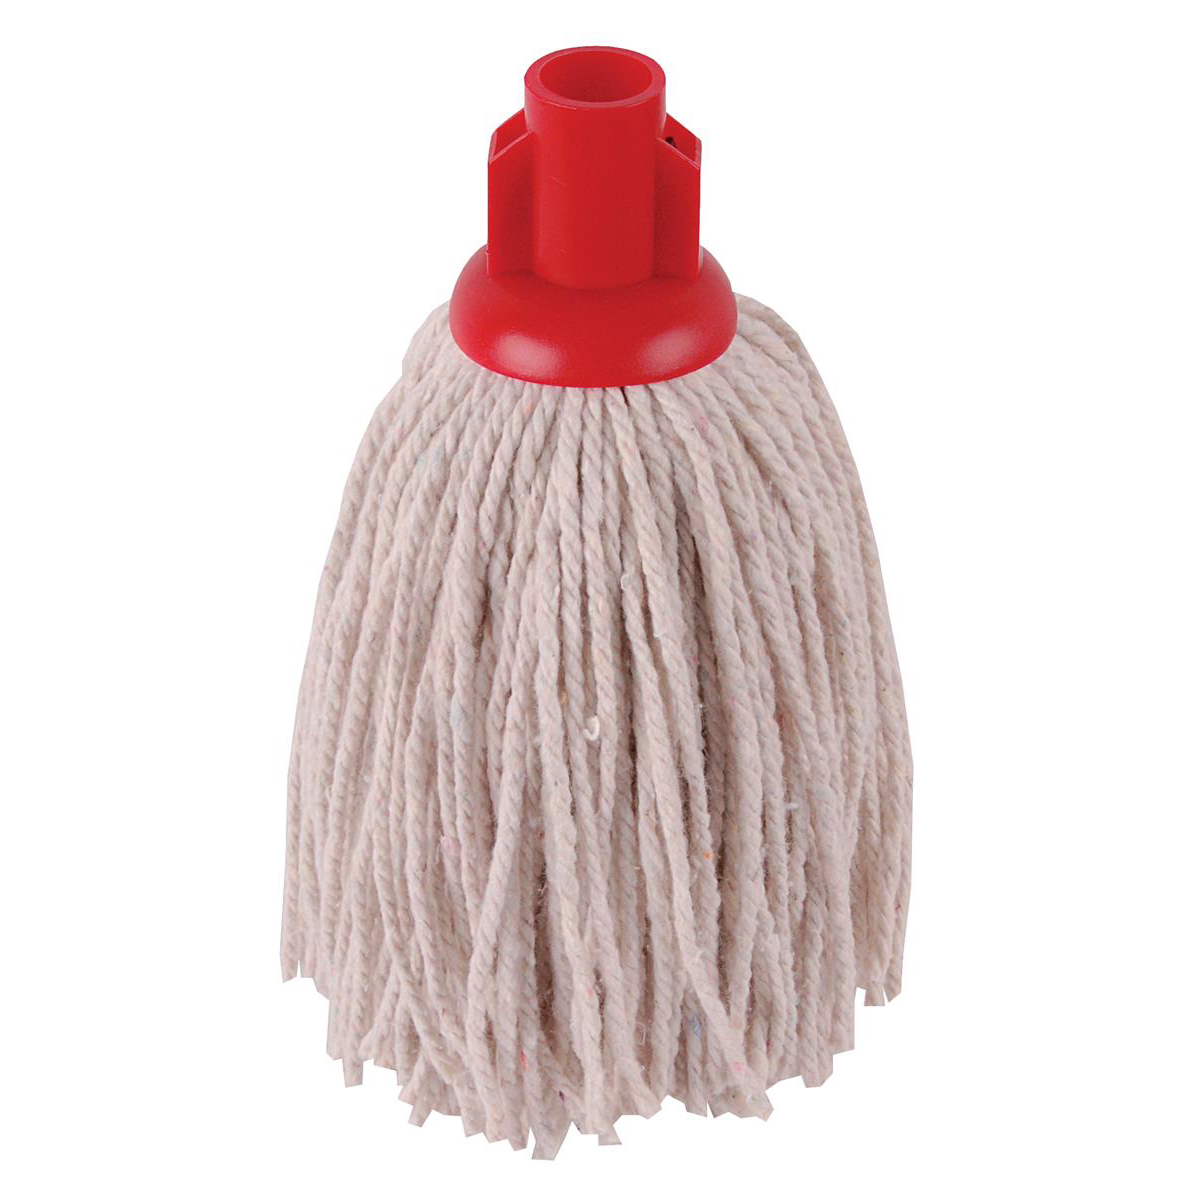 Robert Scott & Sons PY Socket Mop for Smooth Surfaces 12oz Red Ref 101870RED [Pack 10]